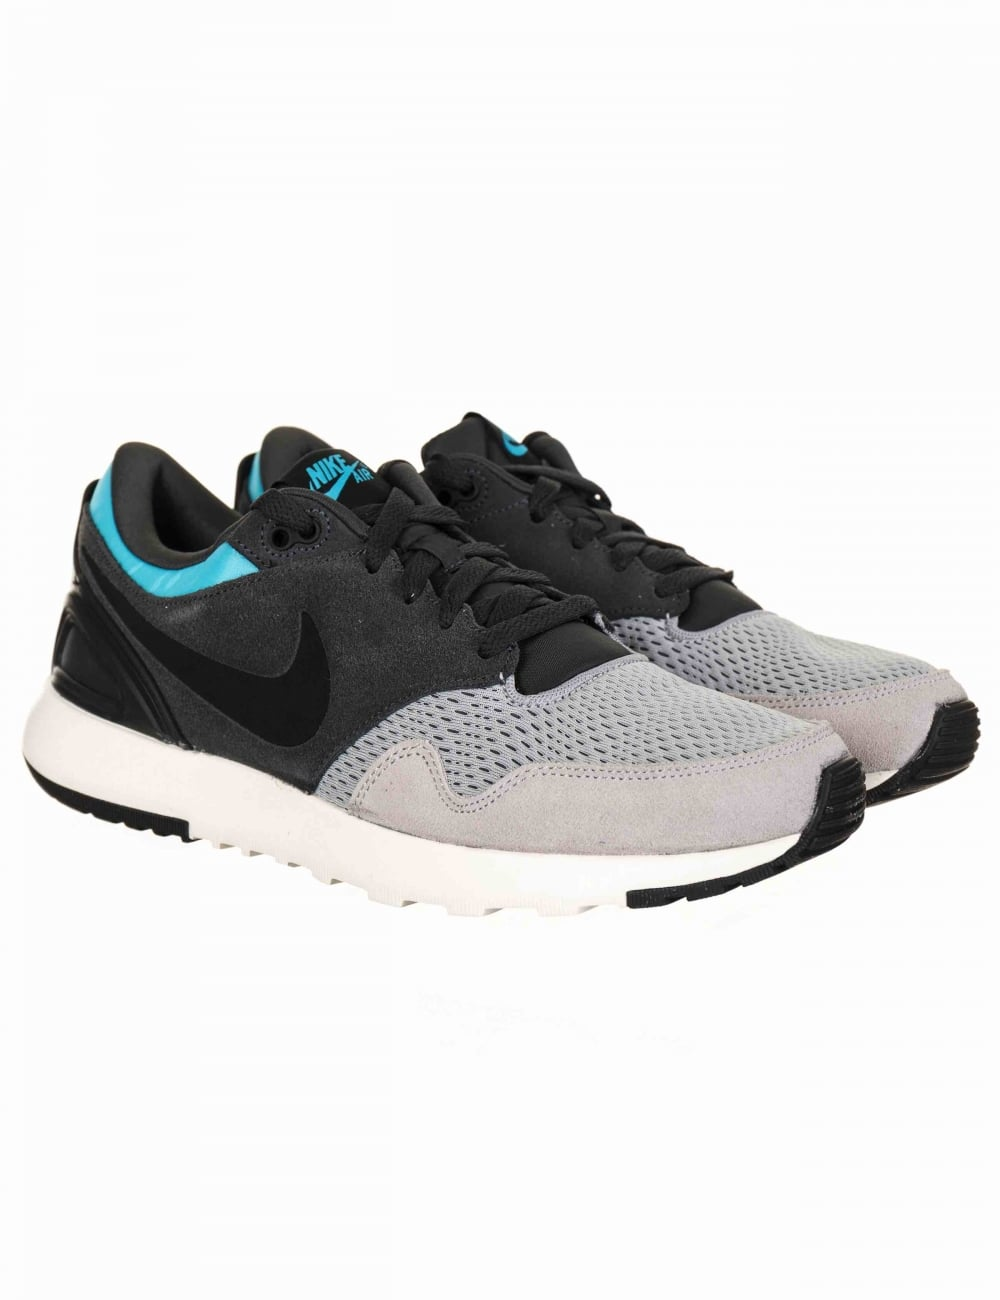 Air Vibenna SE Shoes - Wolf Grey